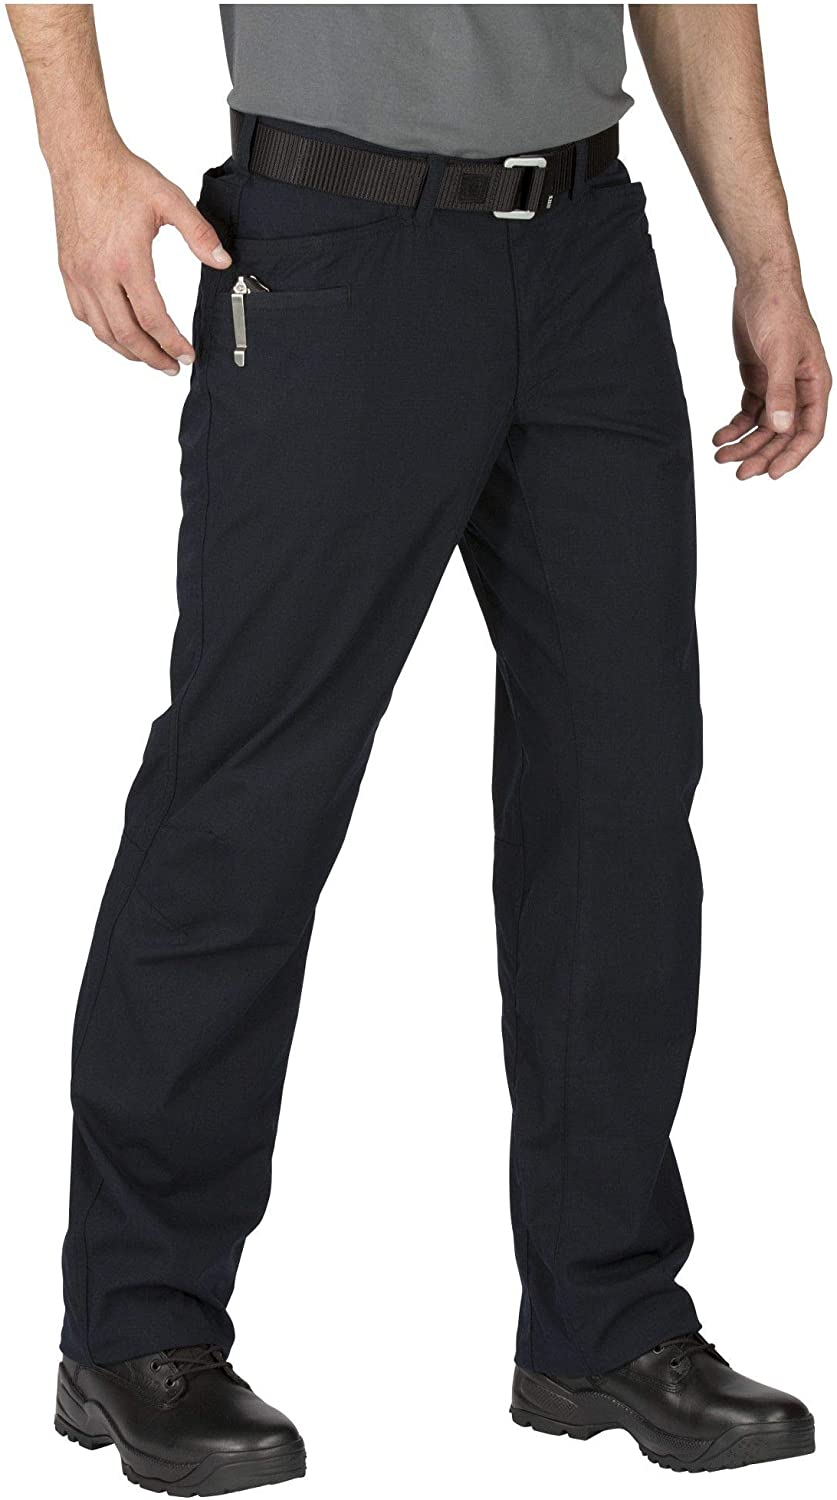 5.11 Tactical Men's Ridgeline Covert Pants